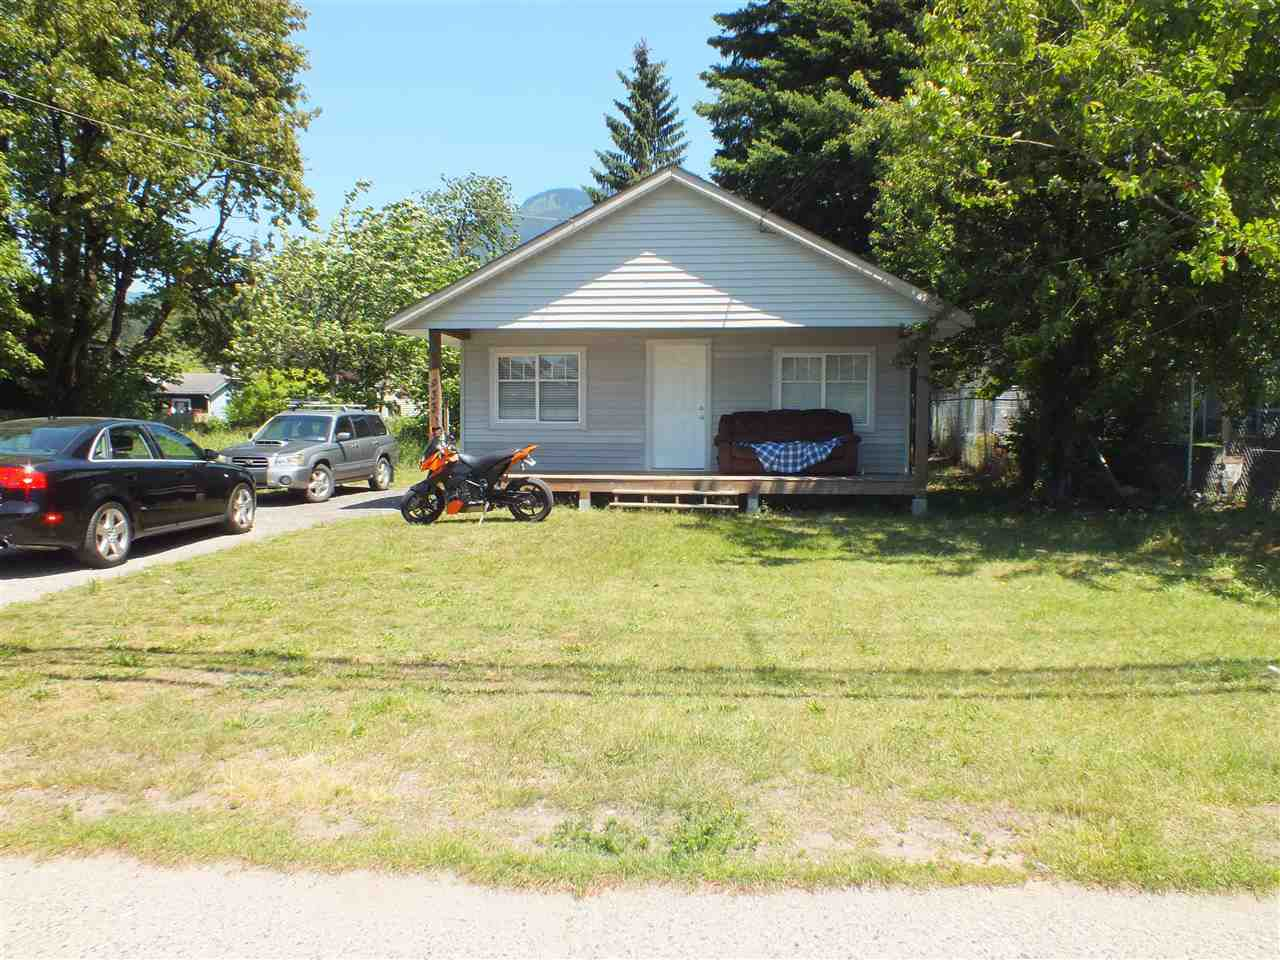 Main Photo: 933 6TH Avenue in Hope: Hope Center House for sale : MLS®# R2281075